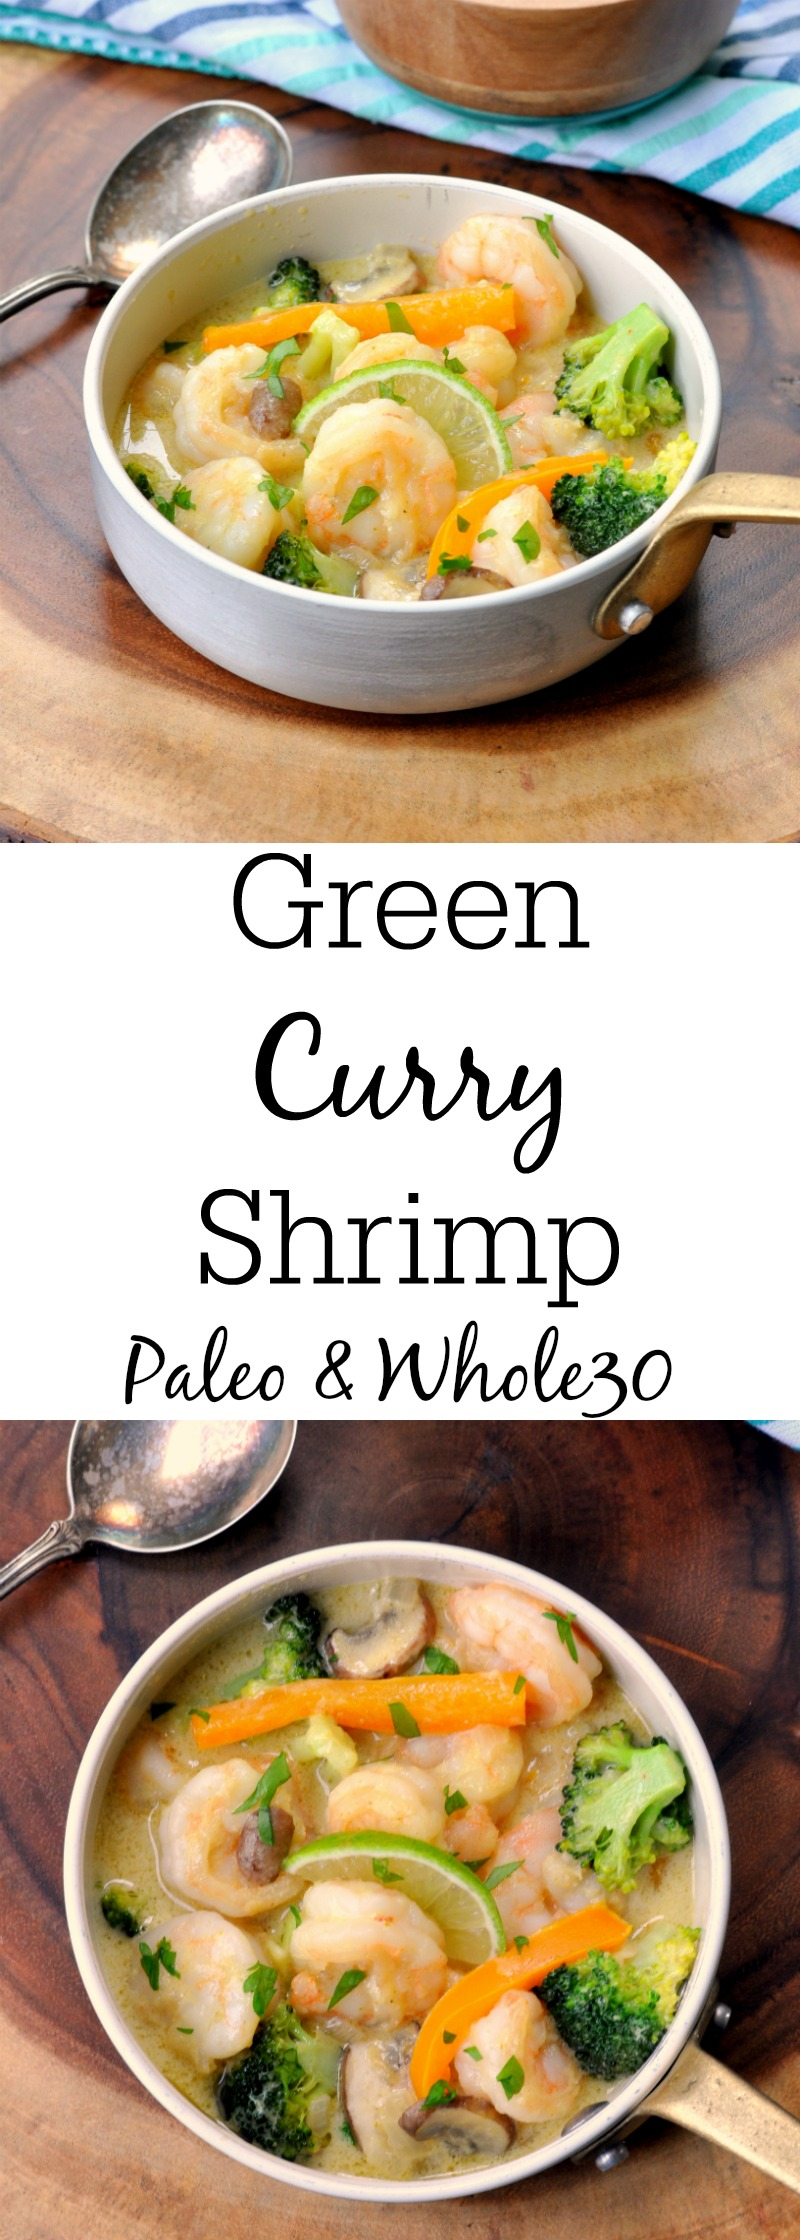 Thai Green Curry Shrimp